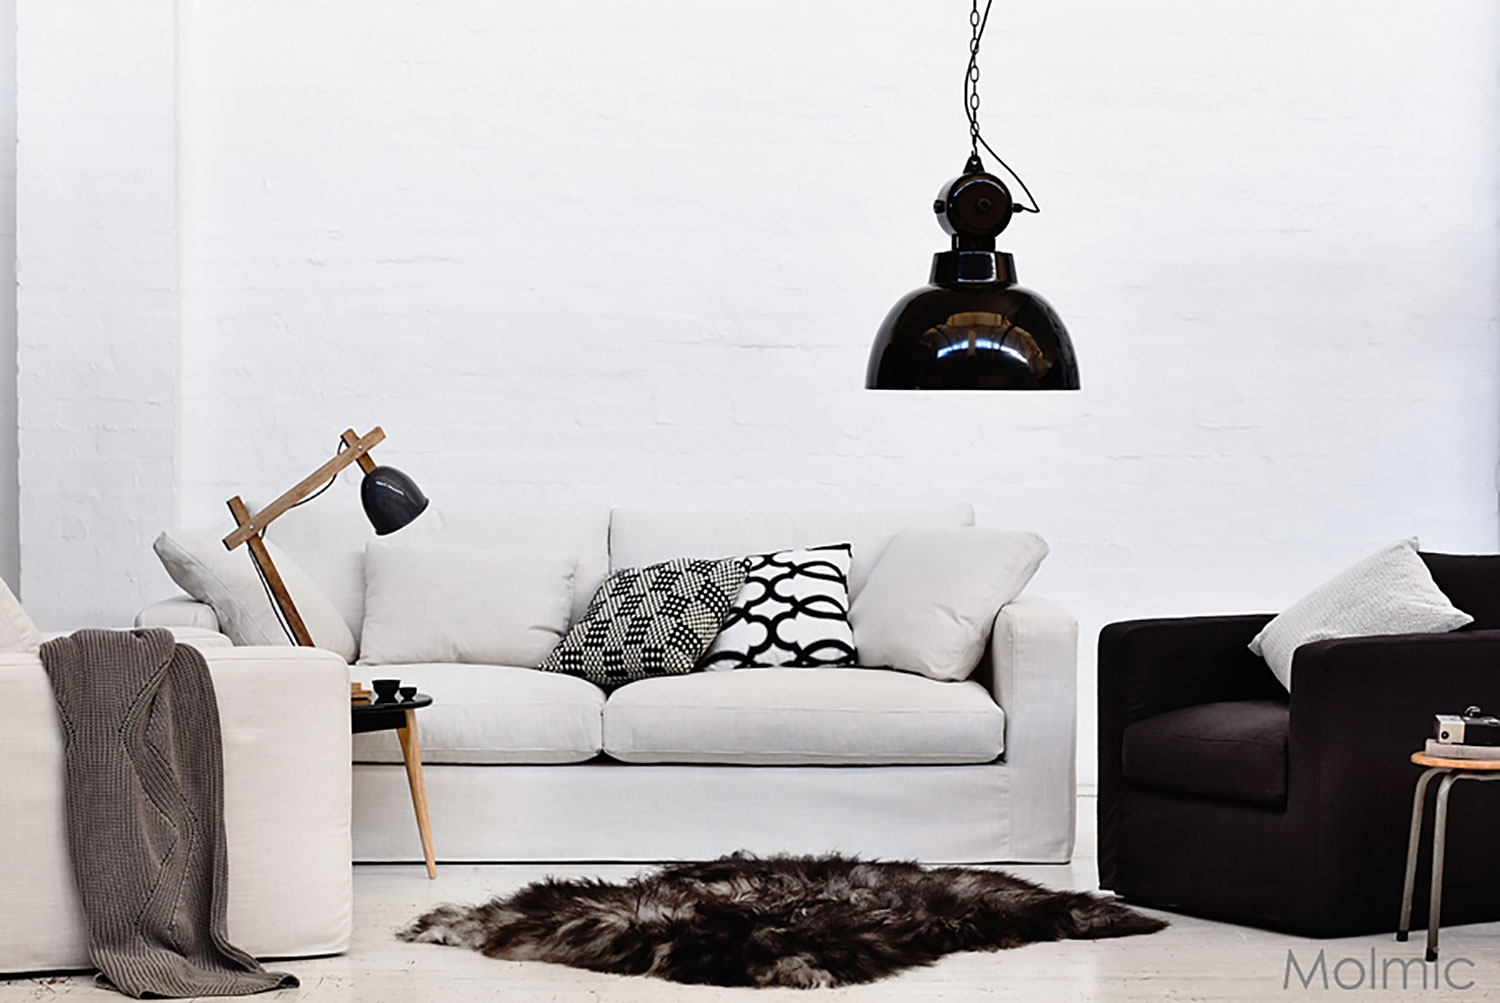 Steele Avenue Relaxed/Loose Cover sofa in Molmic's Urban Snow linen fabric.